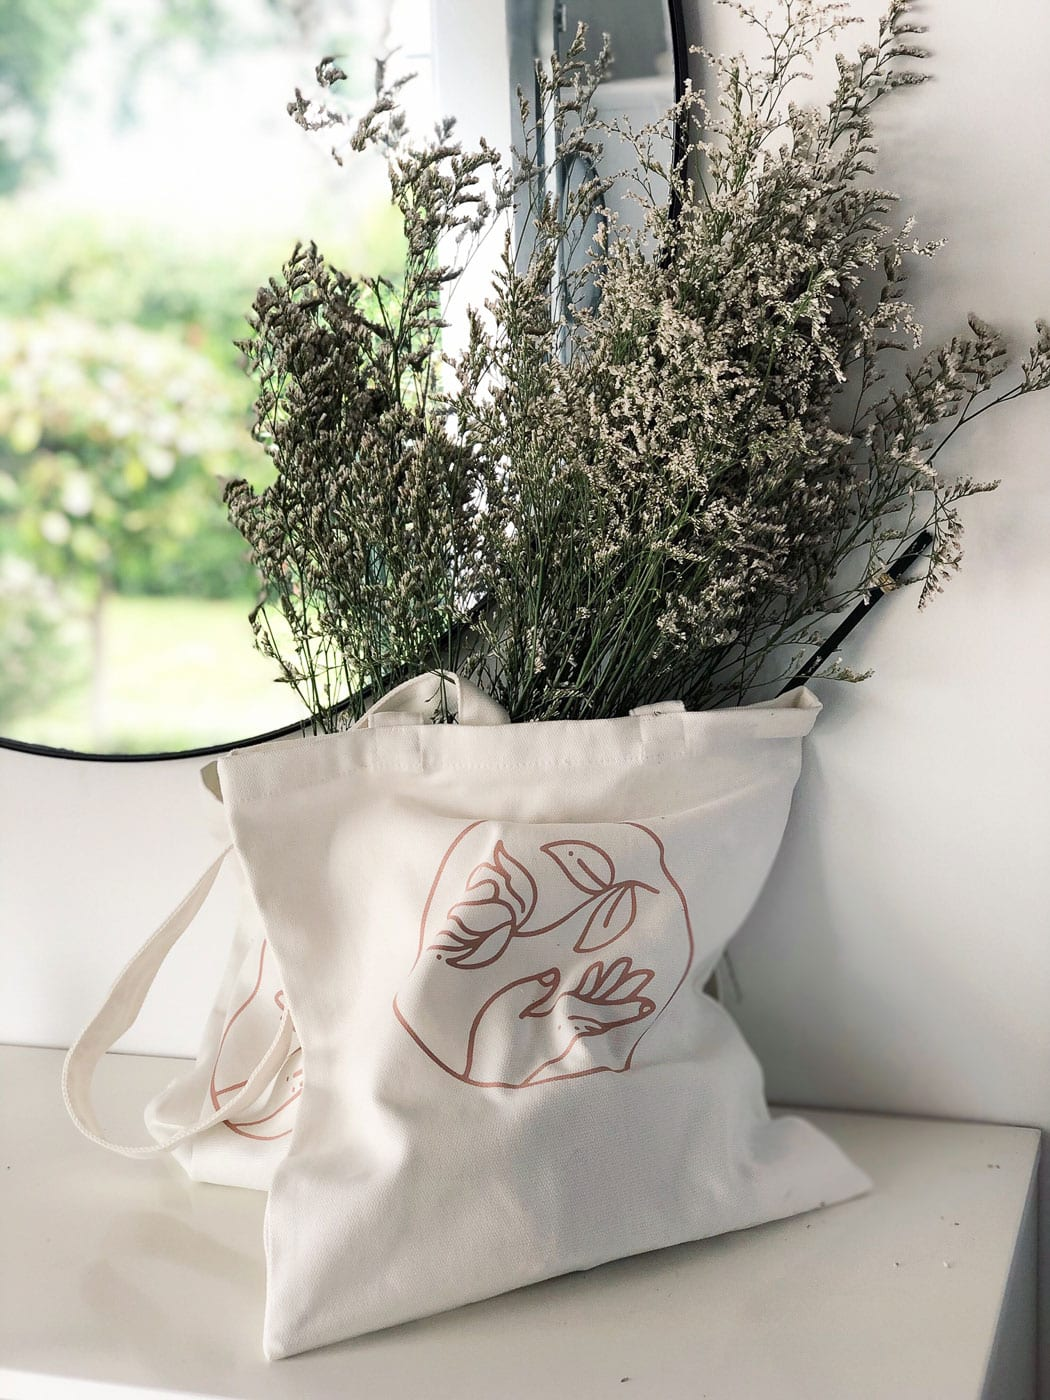 On My Hand Products for Home - Tote Bag filled with lavendar